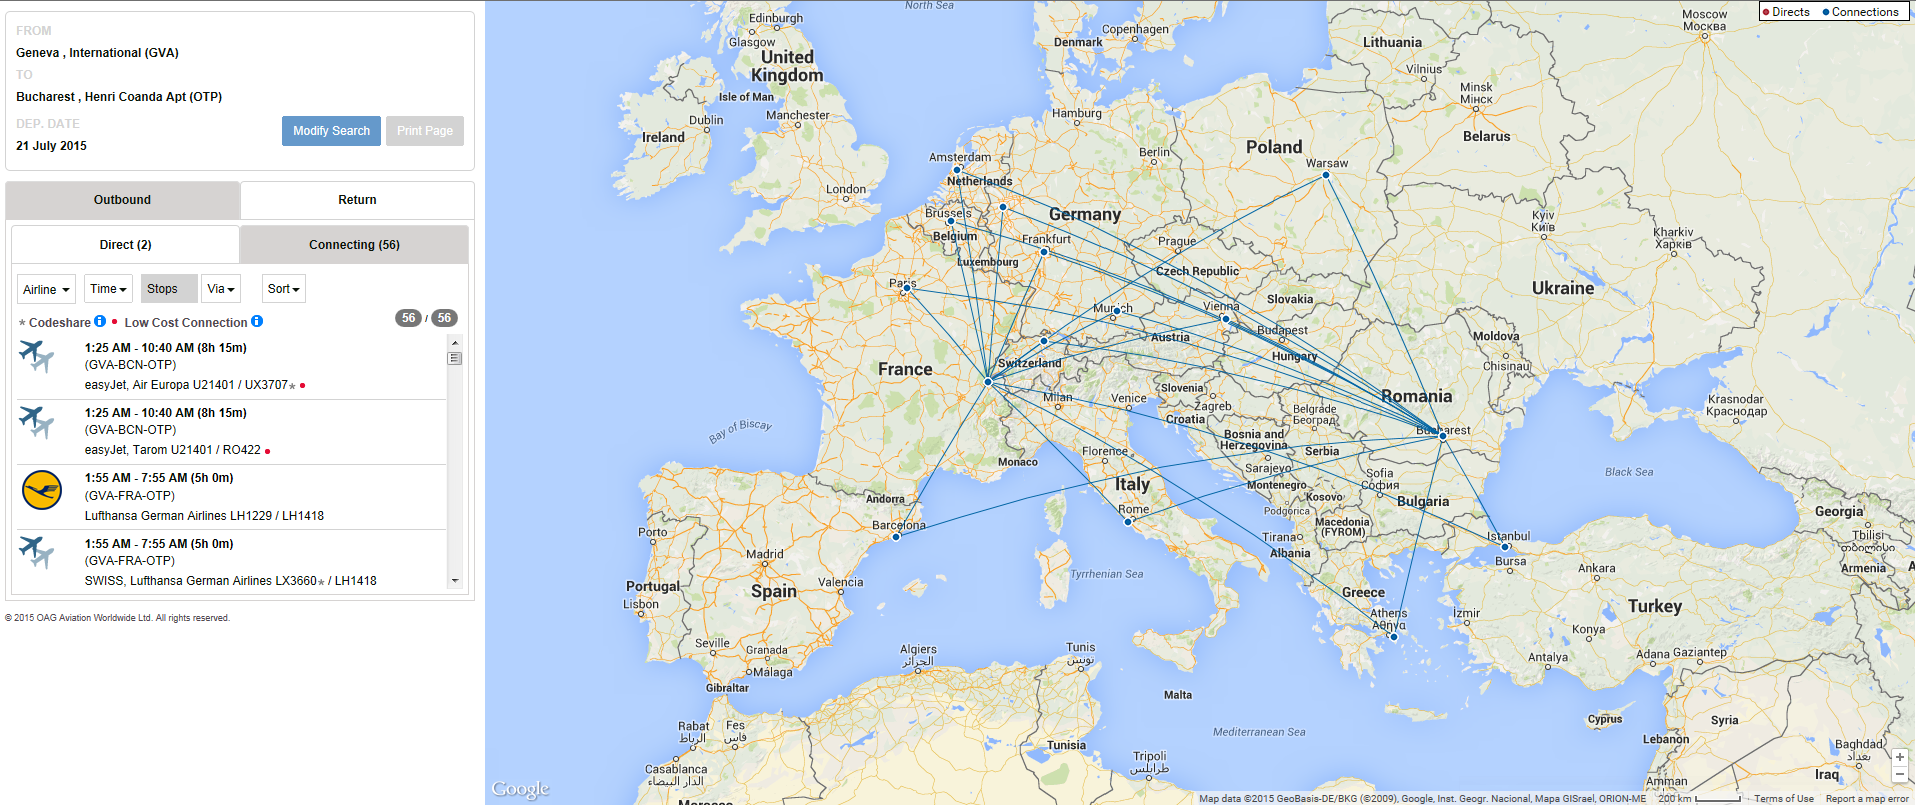 A configurable airport route map to promote your connectivity genevatobucharestroutemapperg gumiabroncs Image collections